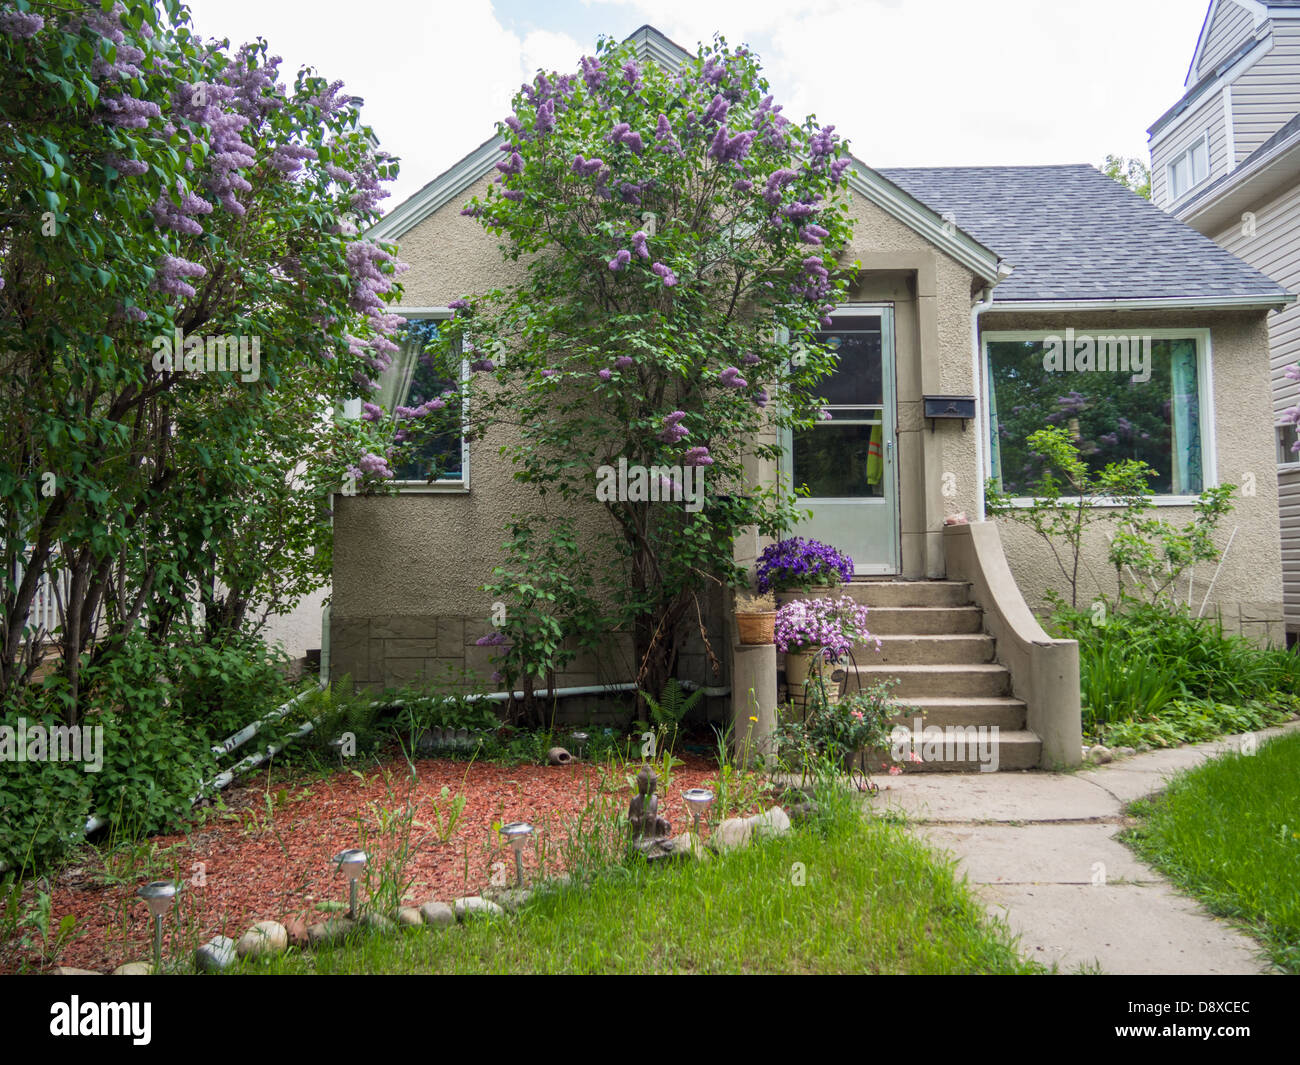 Cute Small Old House Stock Photo 57128916 Alamy